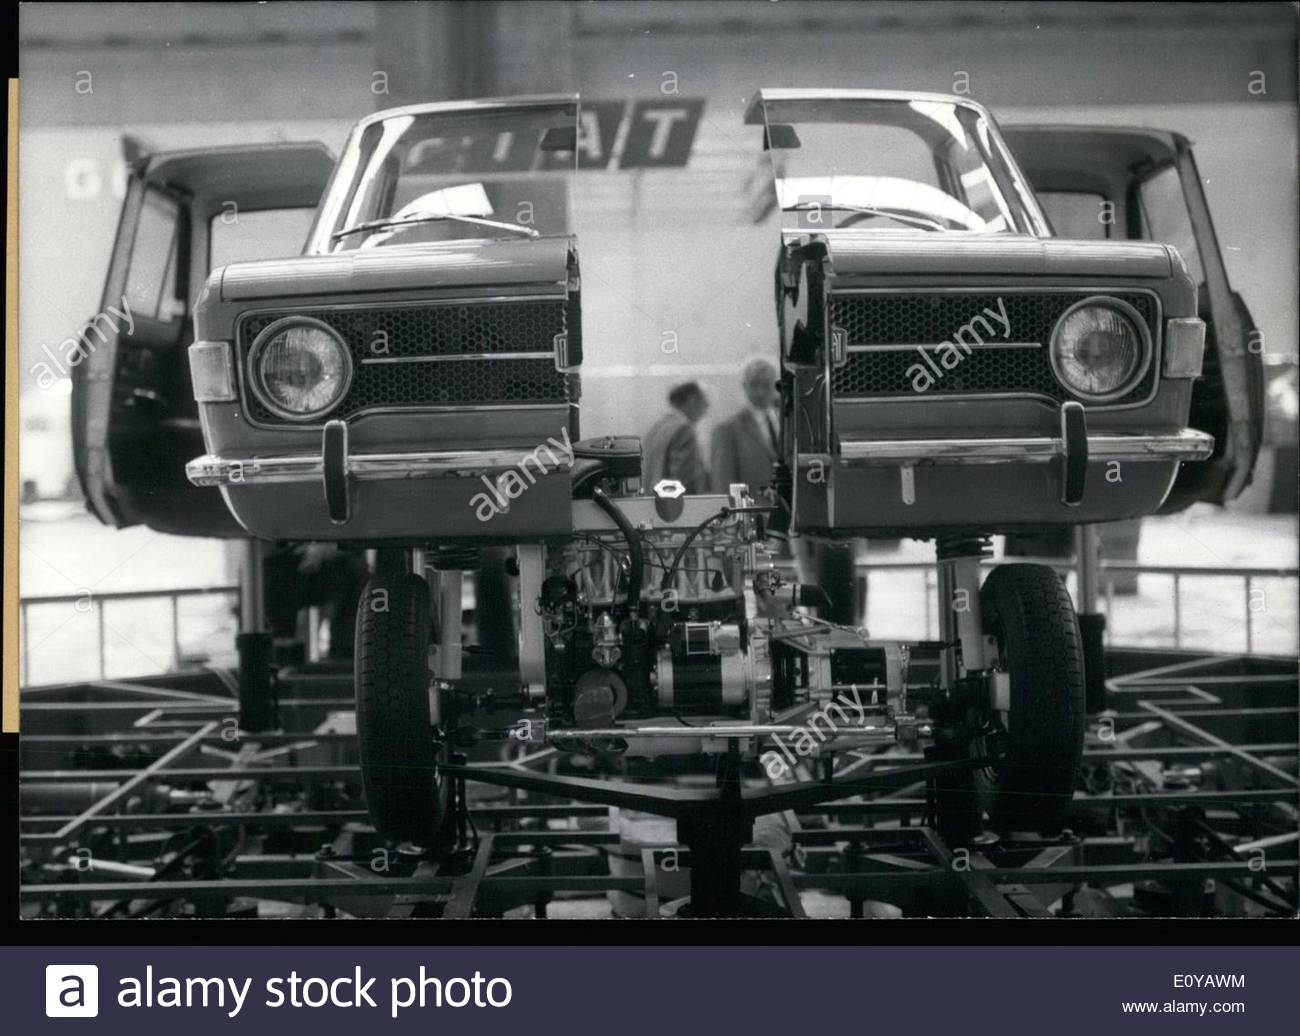 sep 21 1969 this fiat 128 is split down the middle disassembled like E0YAWM